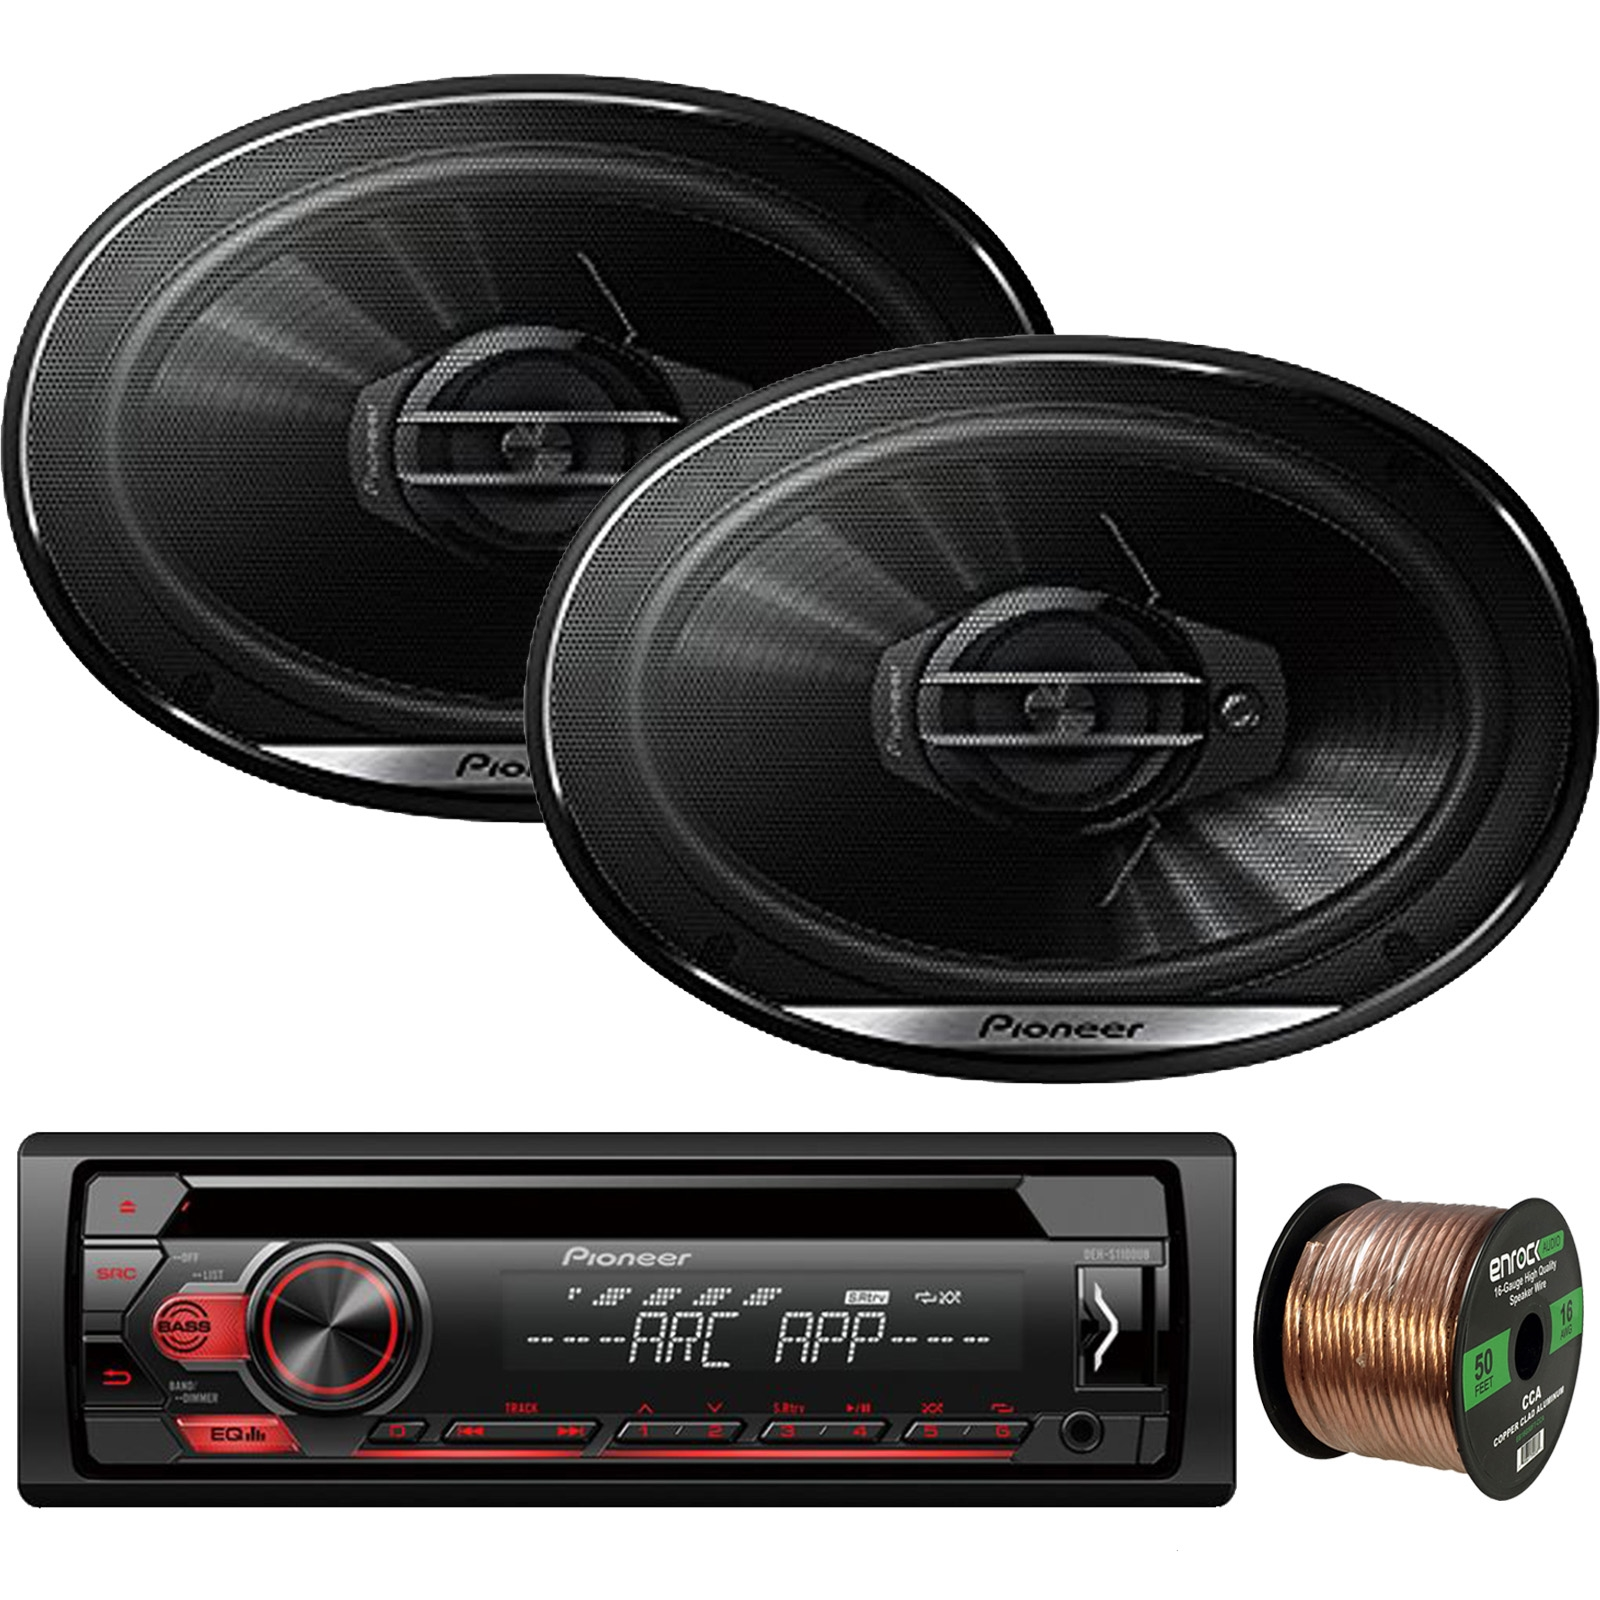 "Pioneer DEH-S1100UB Single-DIN CD Player AM/FM Car Stereo Receiver, 2 x Pioneer TS-G6930F 6x9"" 3-Way Coaxial 400W Max Car Speakers, Enrock Audio 16-Gauge 50Ft. CCA Speaker Wire"